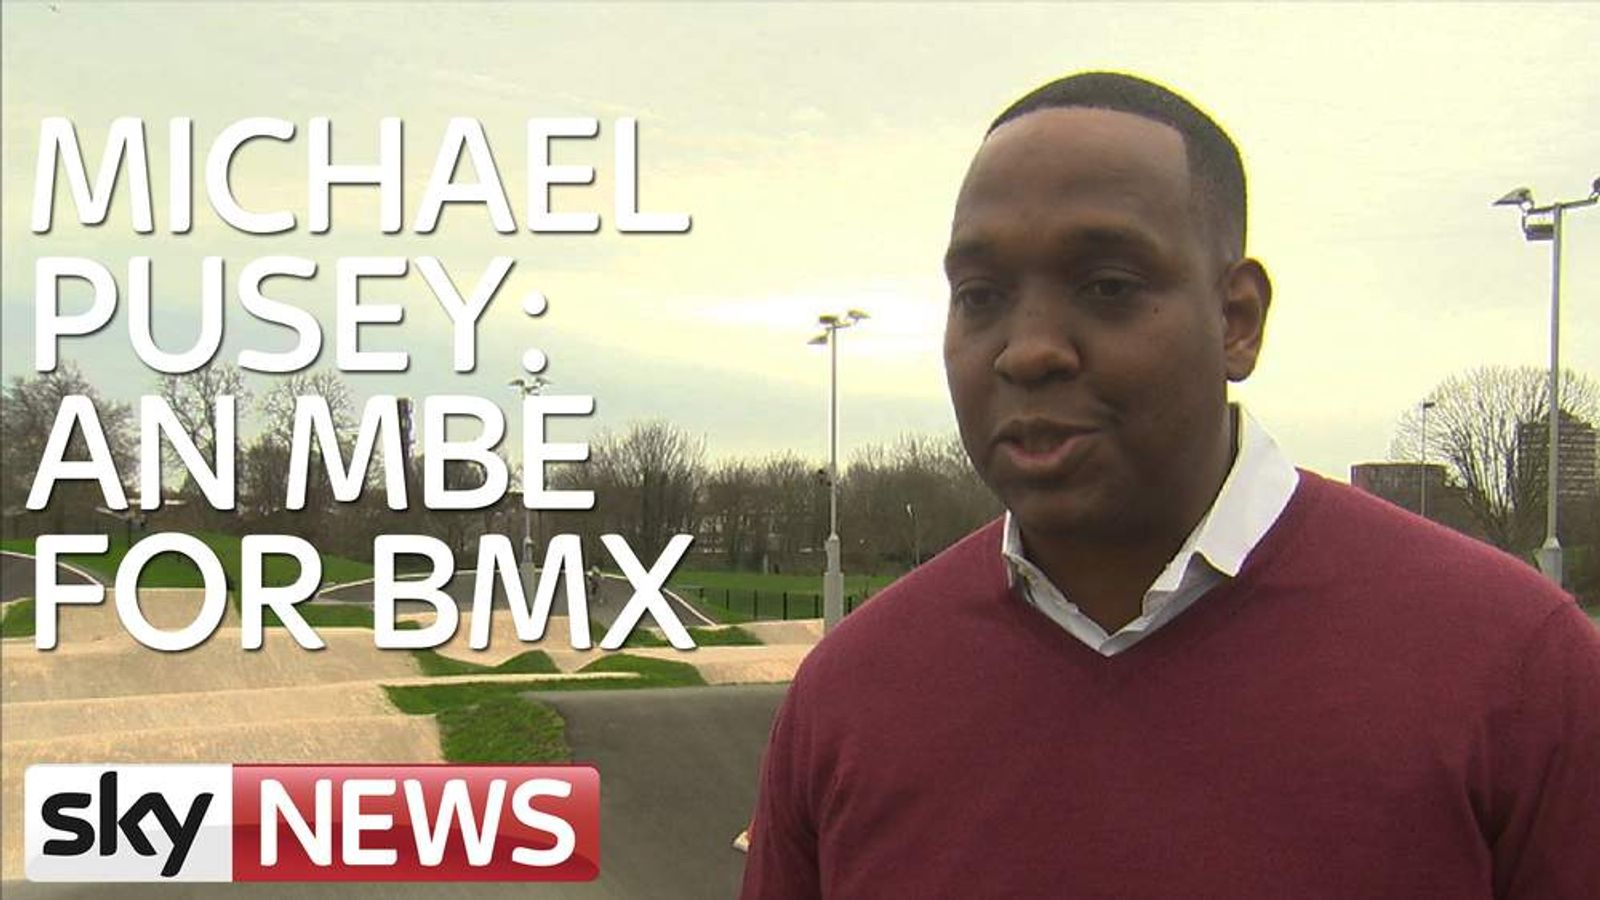 Michael Pusey MBE